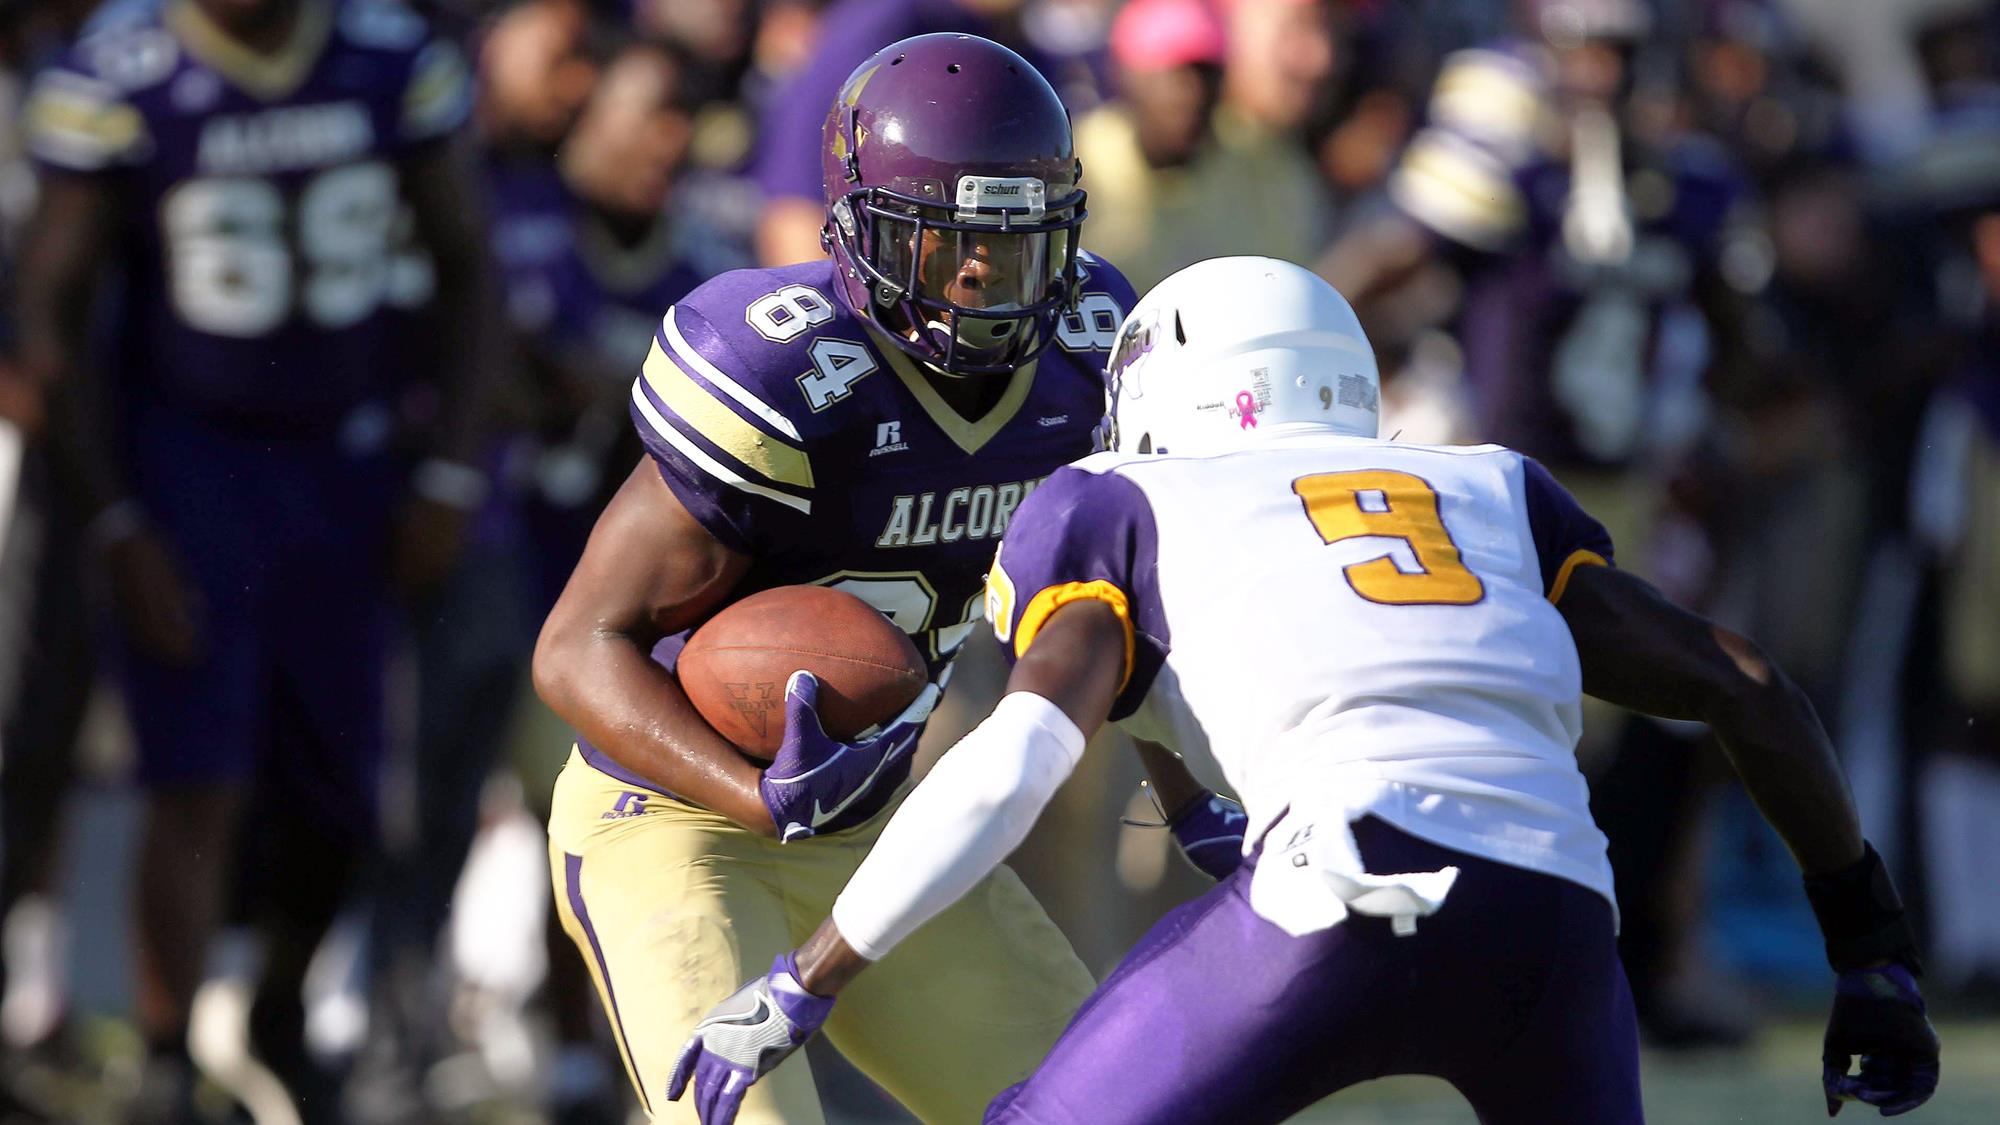 Alcorn Extends Winning-Streak after Taming Panthers 34-21 on Homecoming